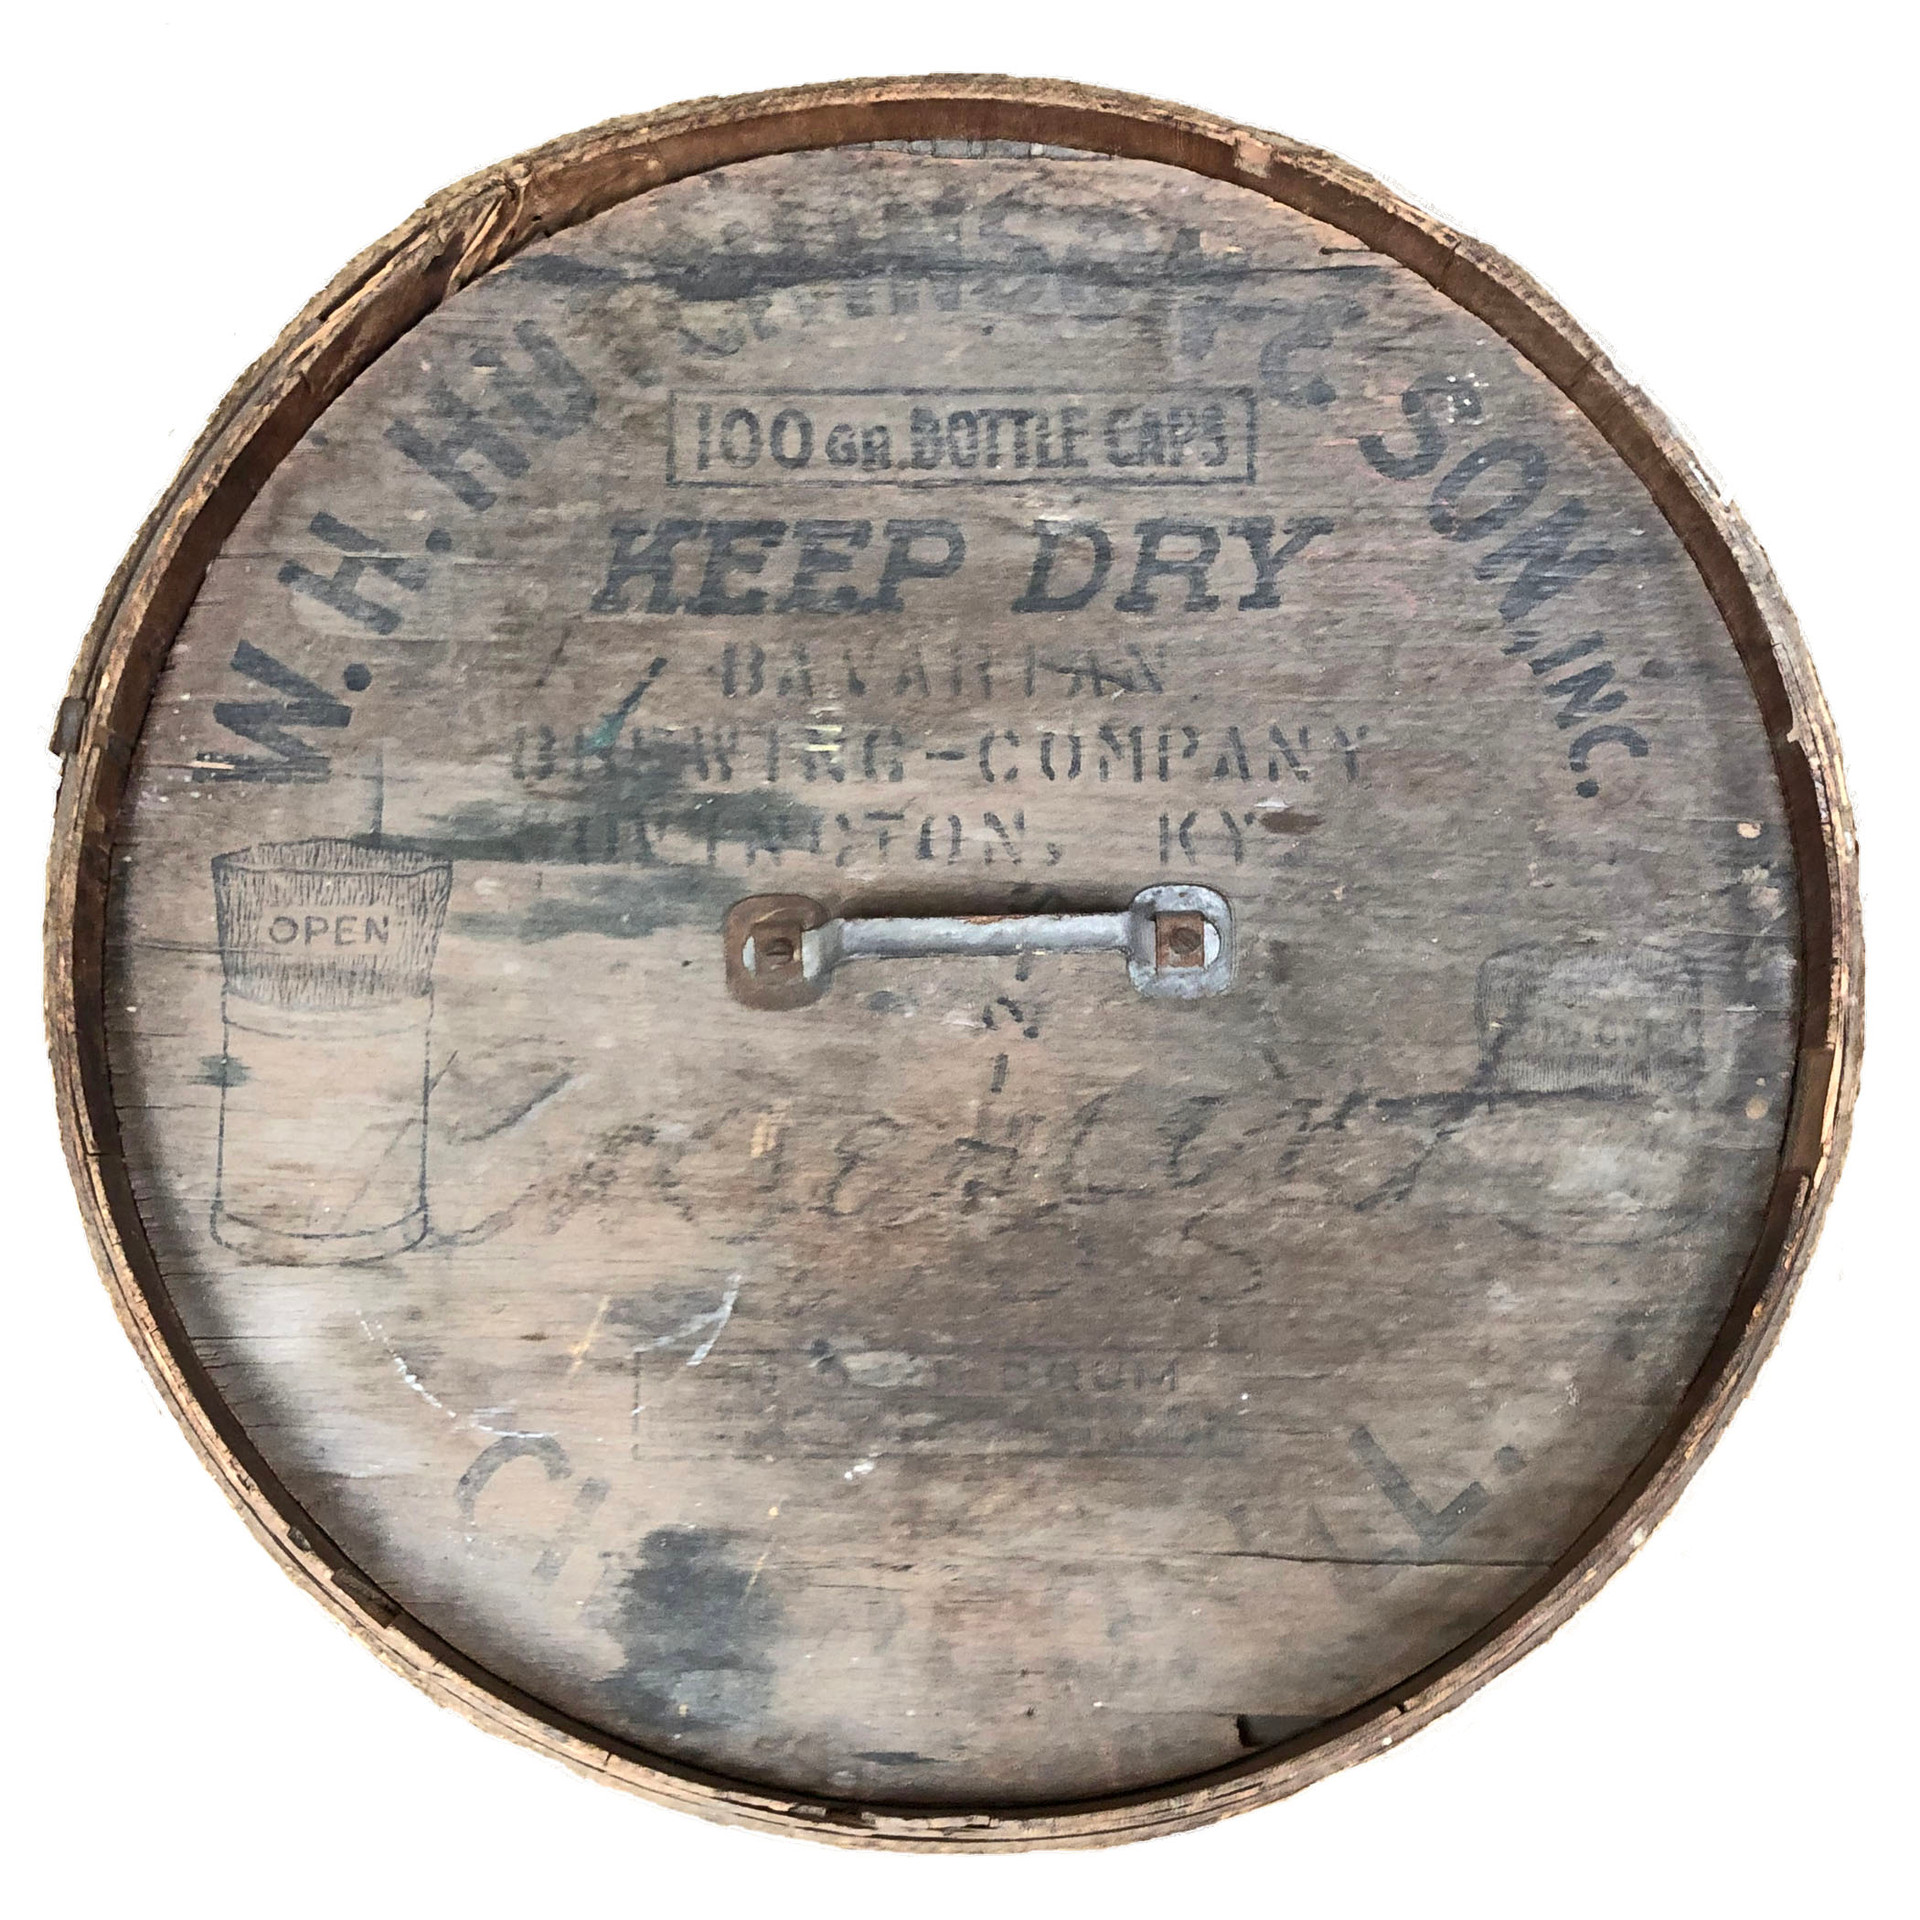 Bavarian Brewing Co., Covington, KY, Bottle Cap Container Lid.